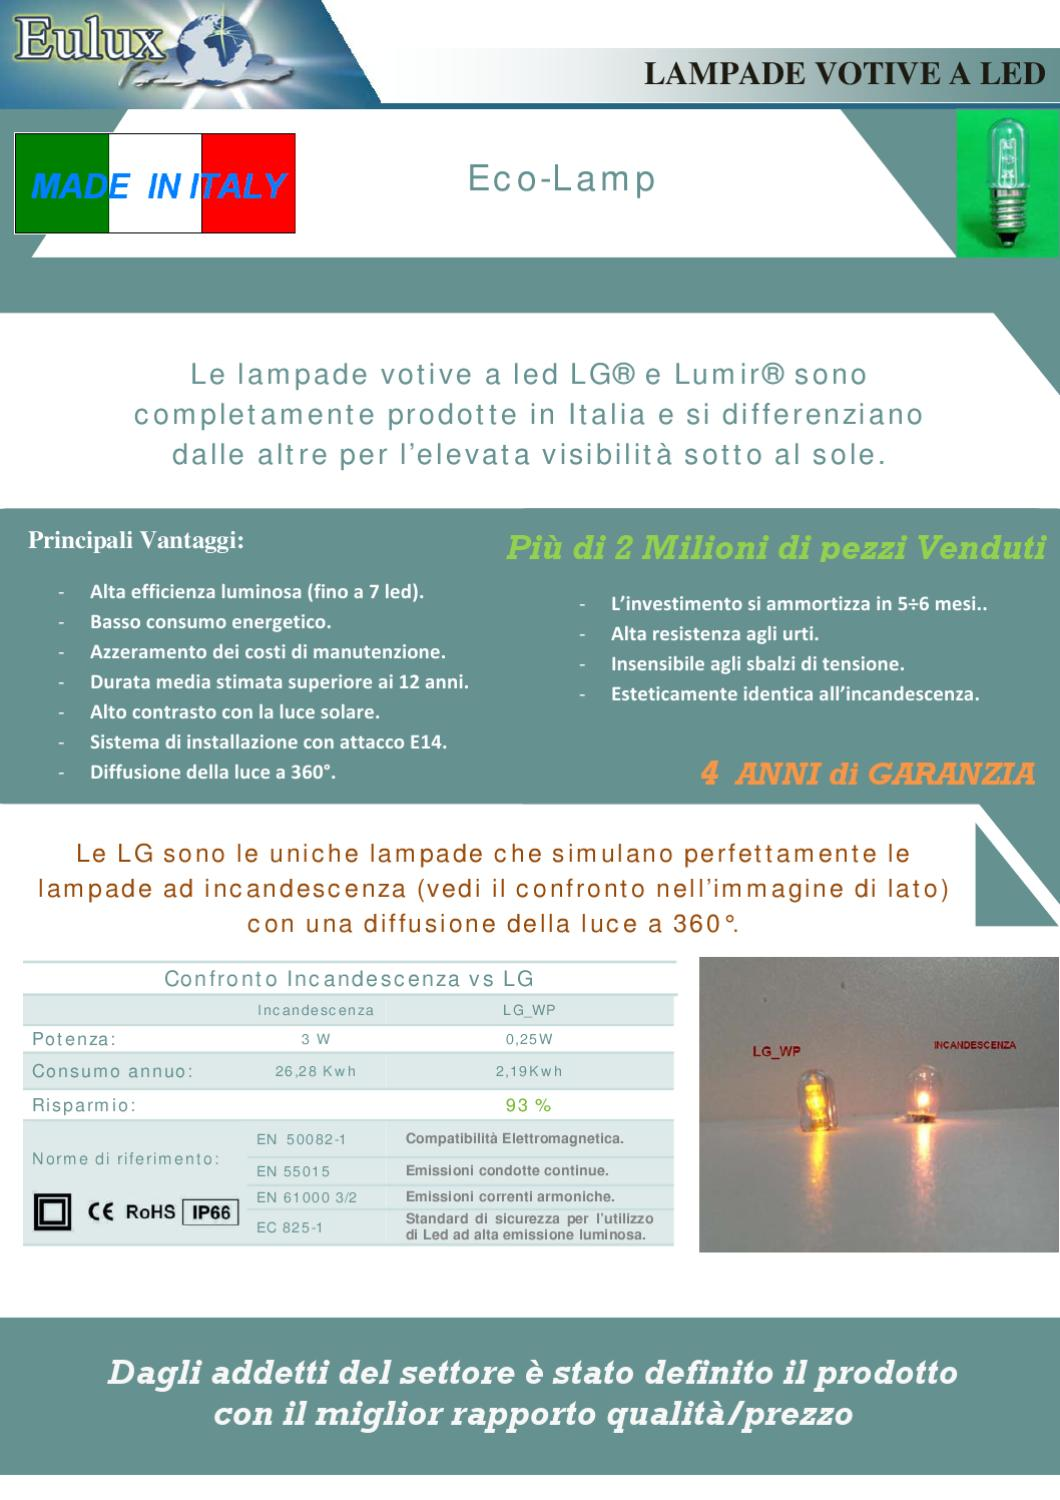 Lampade votive a led by eulux srl issuu for Lampade votive a led